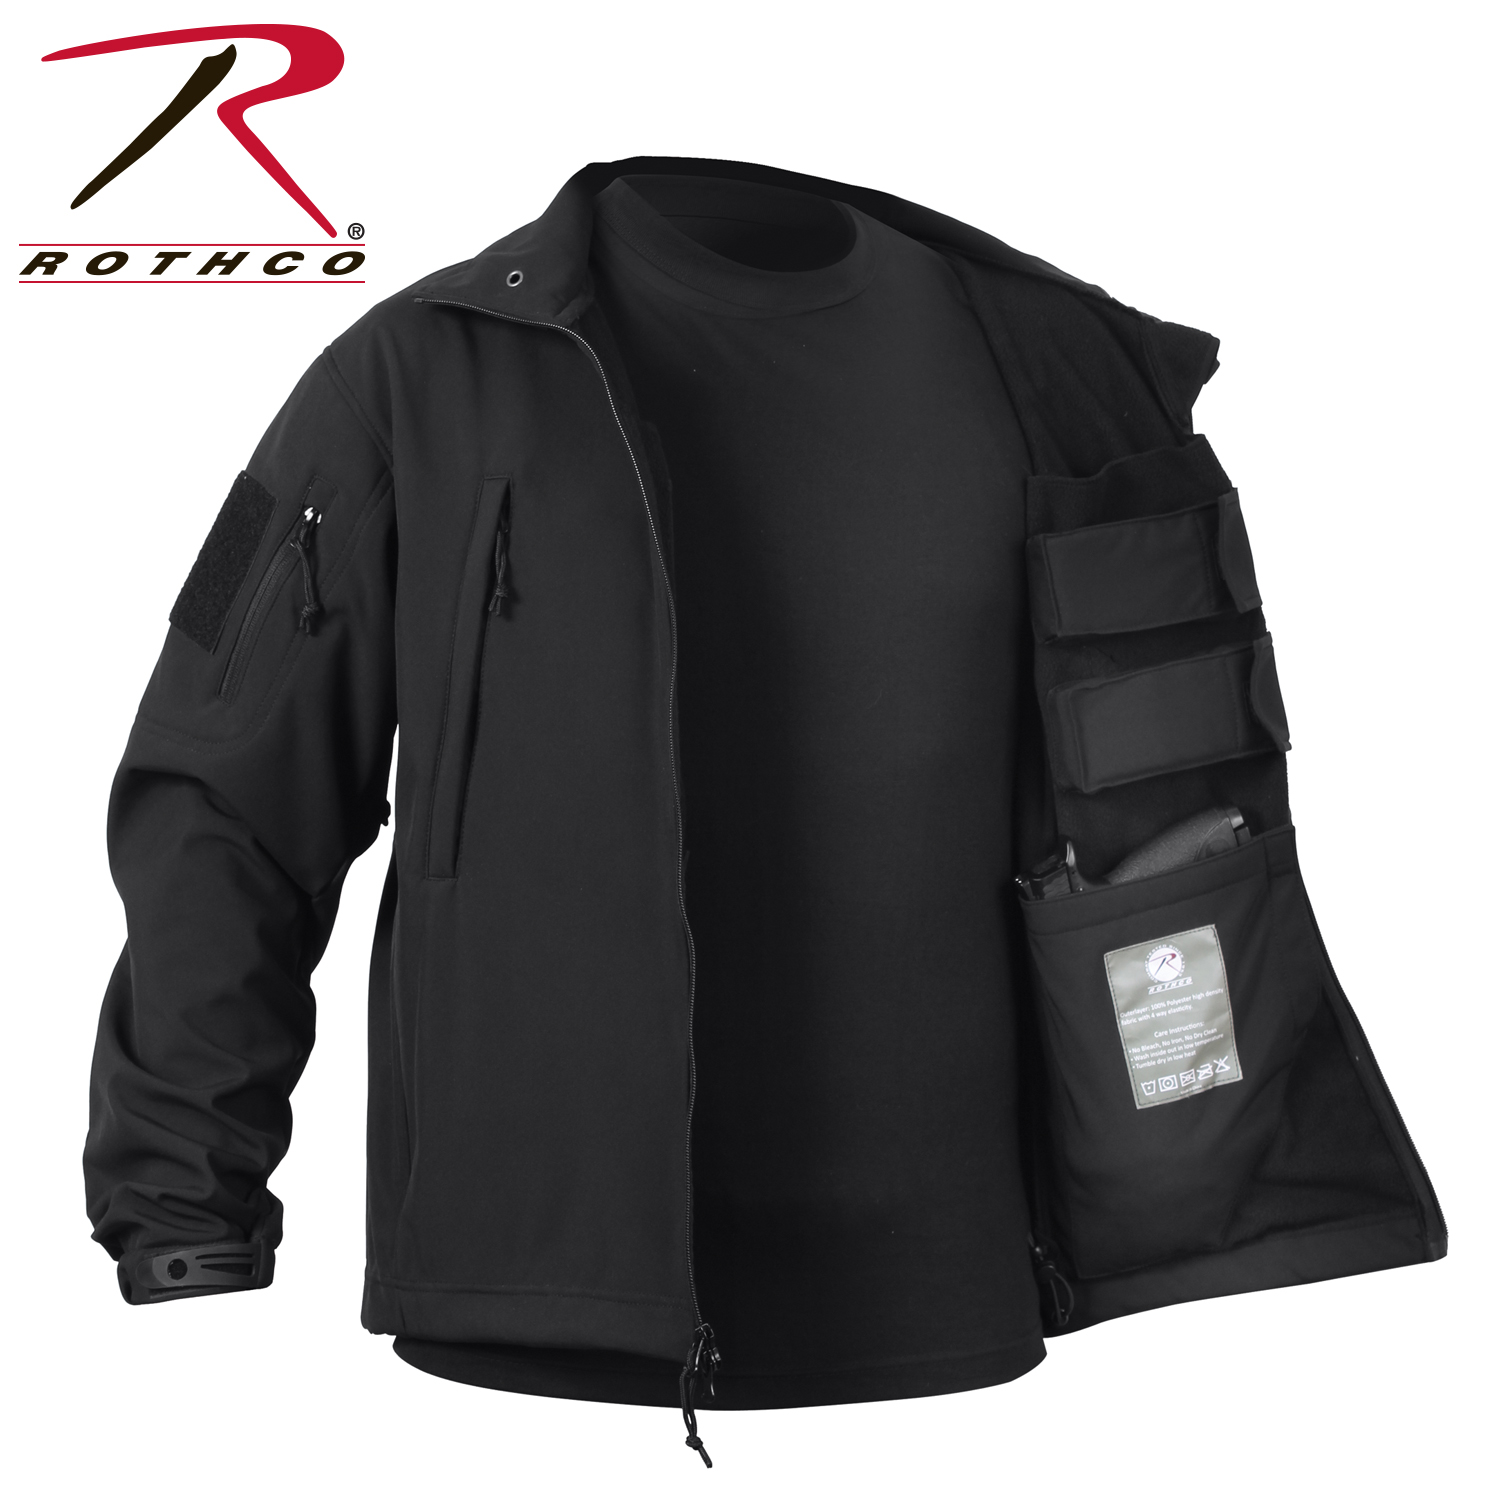 1a2f395ad3a Rothco Concealed Carry Soft Shell Jacket